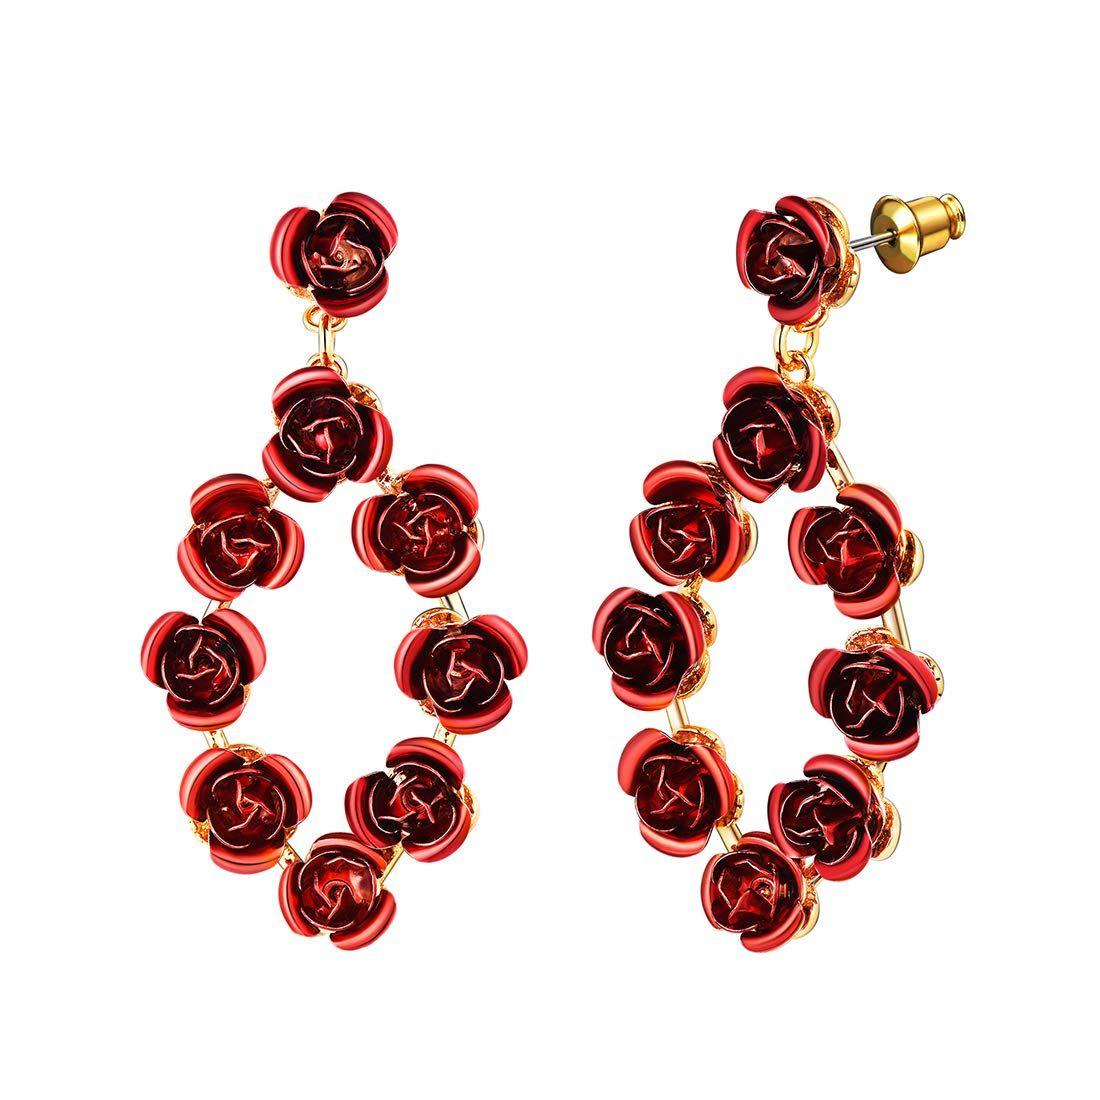 U7 Cute Red Rose Flower Drop Earrings Women Girls Valentines Jewelry 18k Gold Plated Metal Fashion With Images Necklace For Girlfriend Wedding Bracelet Bridesmaid Bracelet